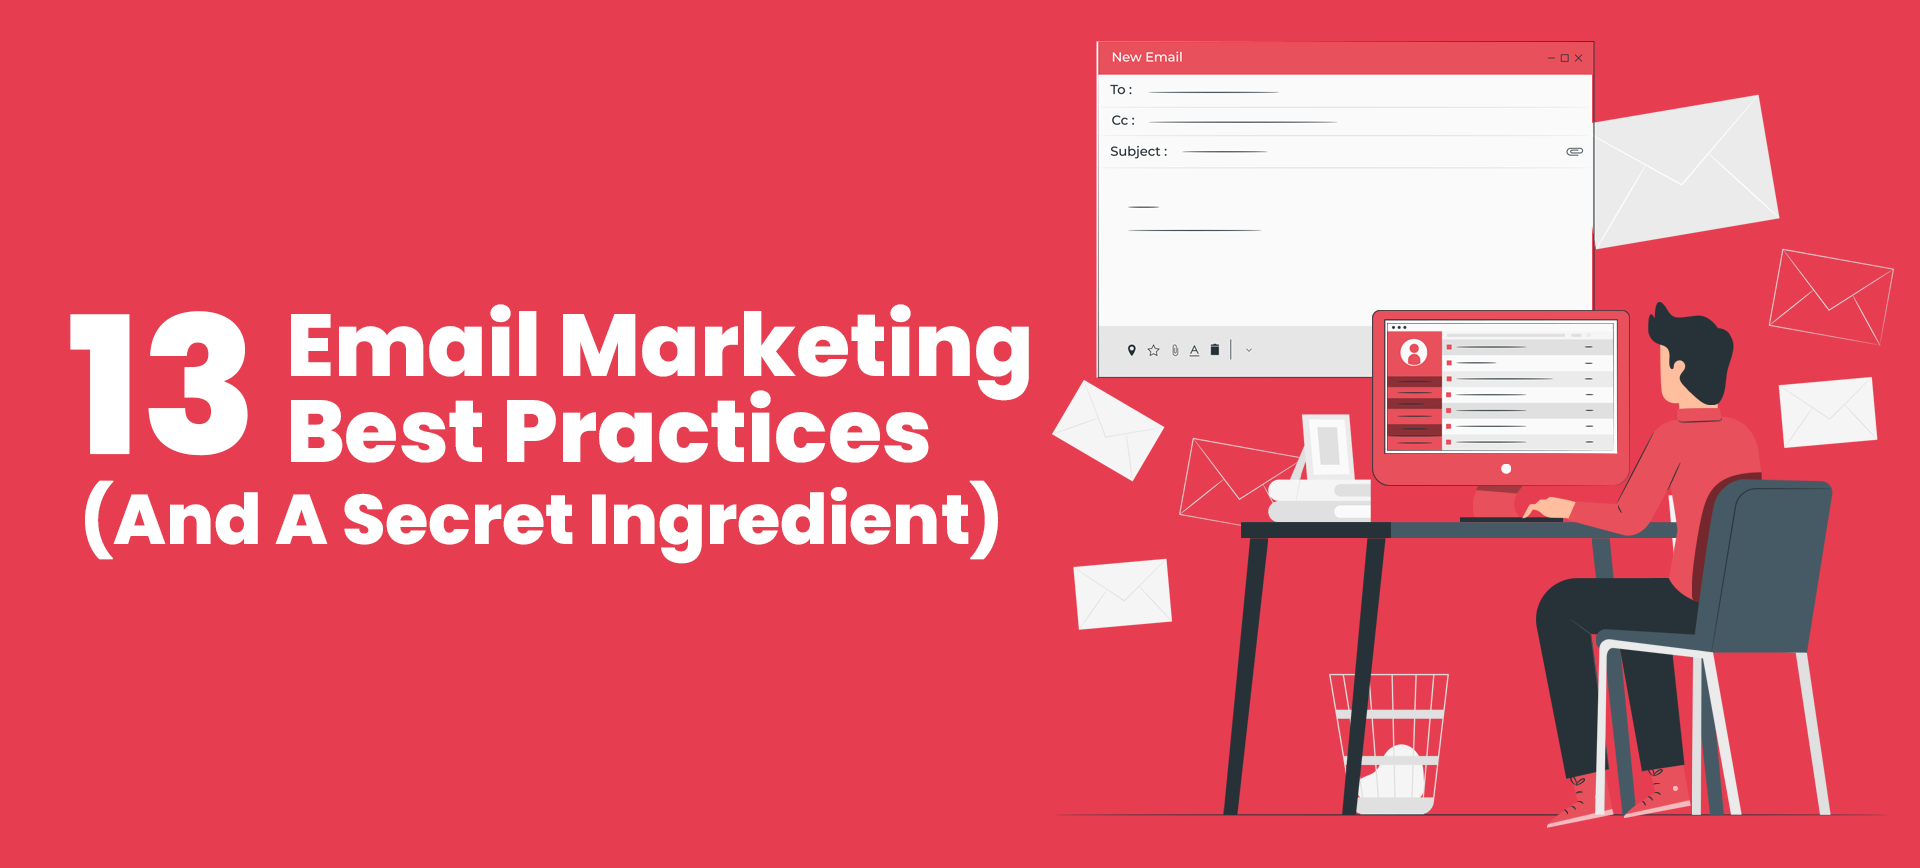 13 Email Marketing Best Practices (And A Secret Ingredient)